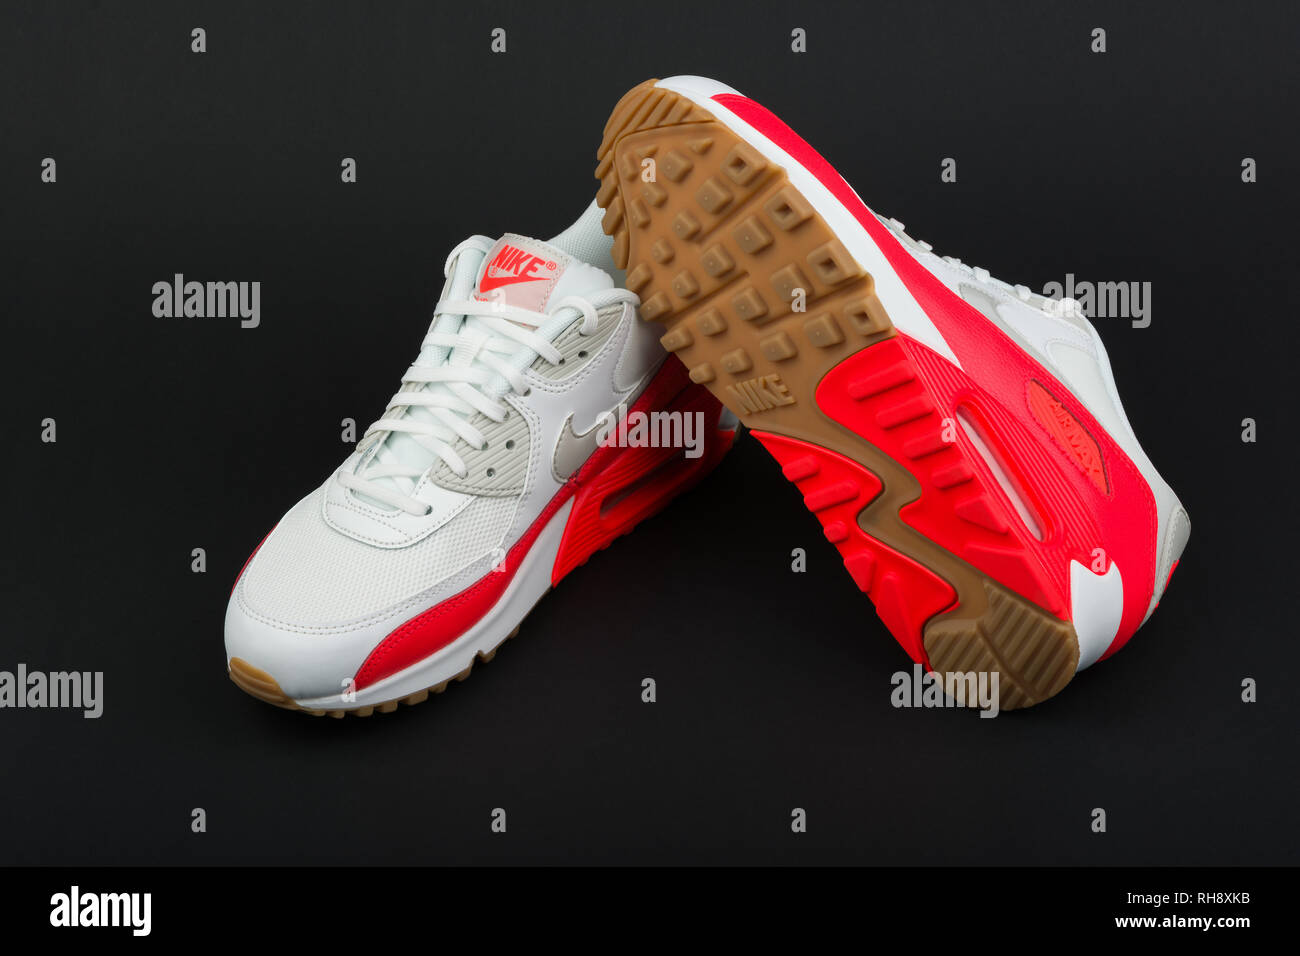 2758010875 BURGAS, BULGARIA - AUGUST 29, 2016: Nike Air MAX women's shoes - sneakers